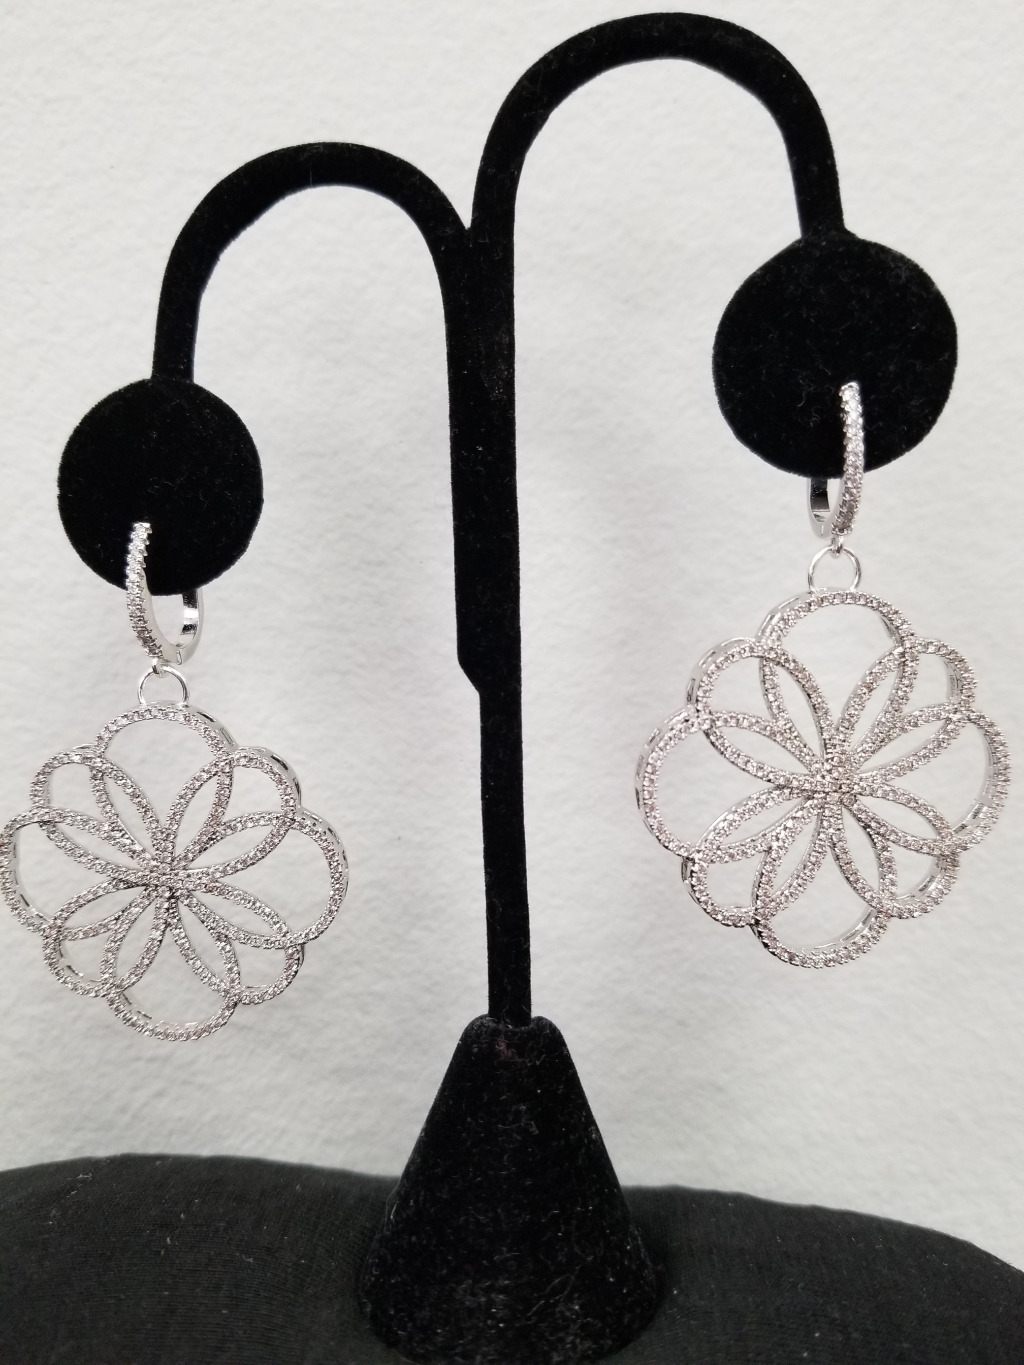 These gorgeous earrings are full of sparkle with all of the pave cubic zirconias!! These are definitely statement earrings!!